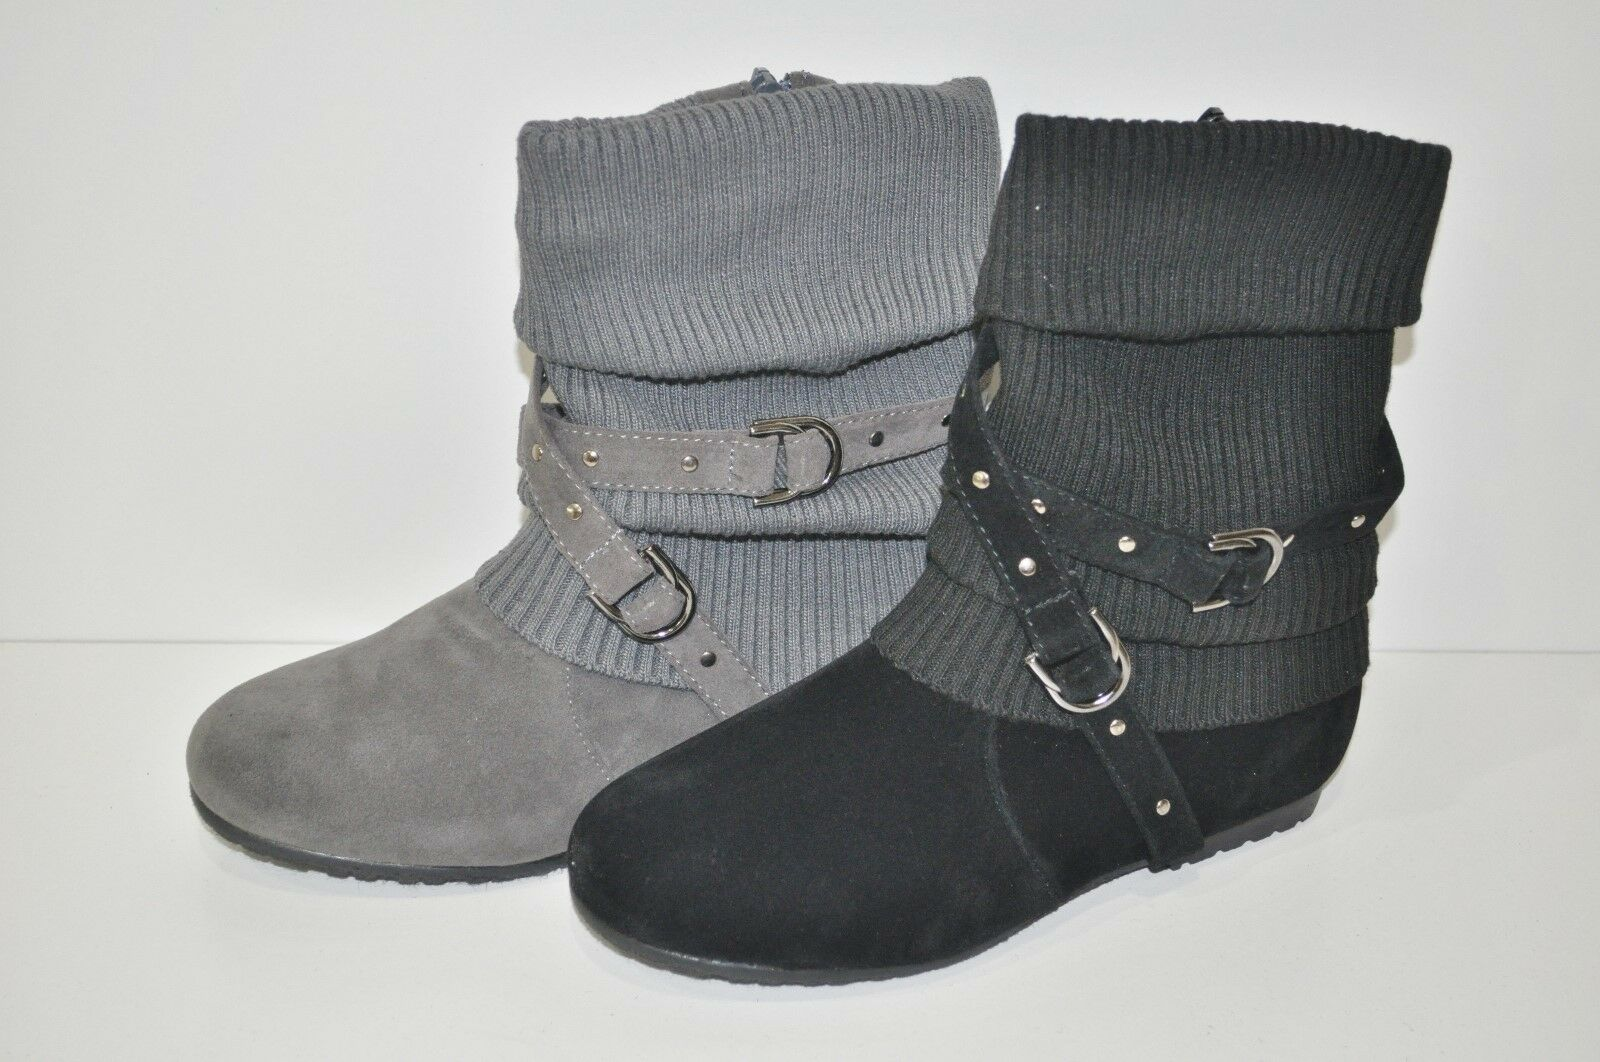 NEW ANNA LIZZY FLAT FASHION SLOUCHY BOOT SWEATER KNIT TOP STRAPS ZIPPER BK TN GY